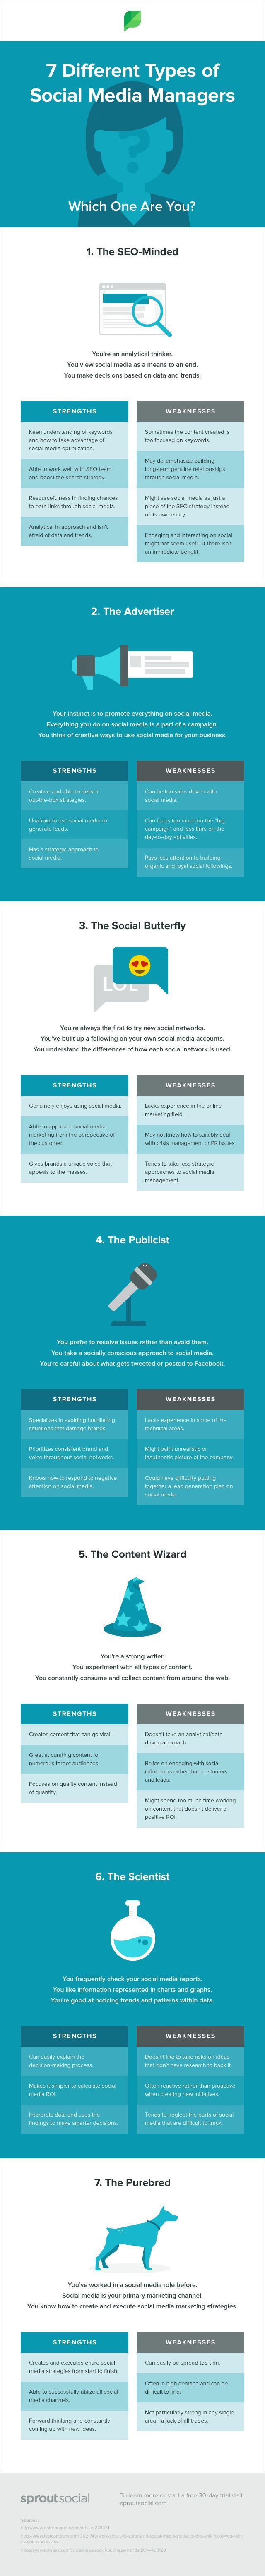 The 7 Different Types of Social Media Marketing Managers: Which One Are You? - #infographic